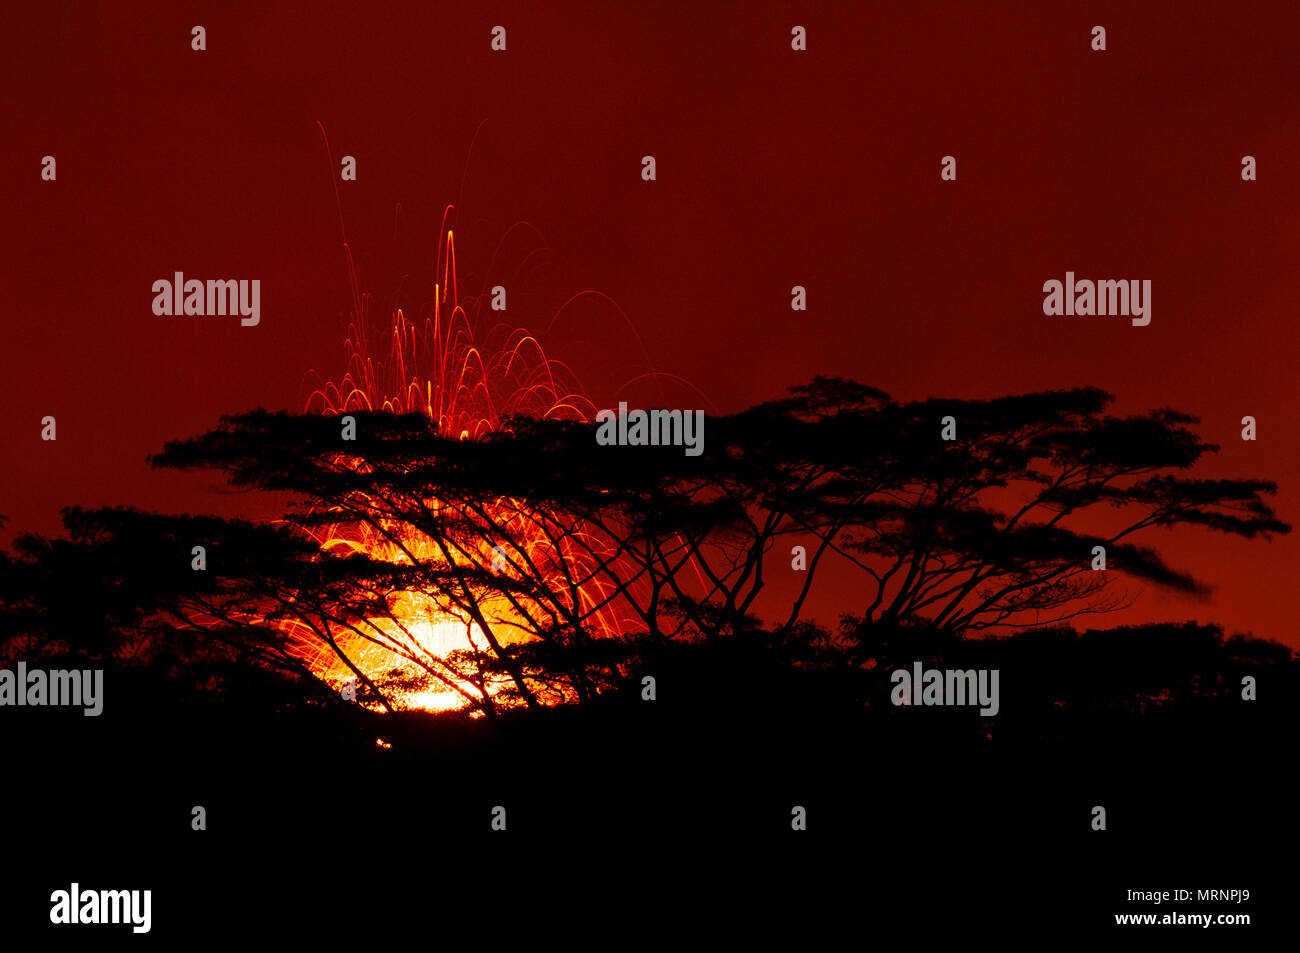 Molten lava spews hundreds of feet into the air at fissure 17 from the eruption of the Kilauea volcano May 19, 2018 in Pahoa, Hawaii. - Stock Image